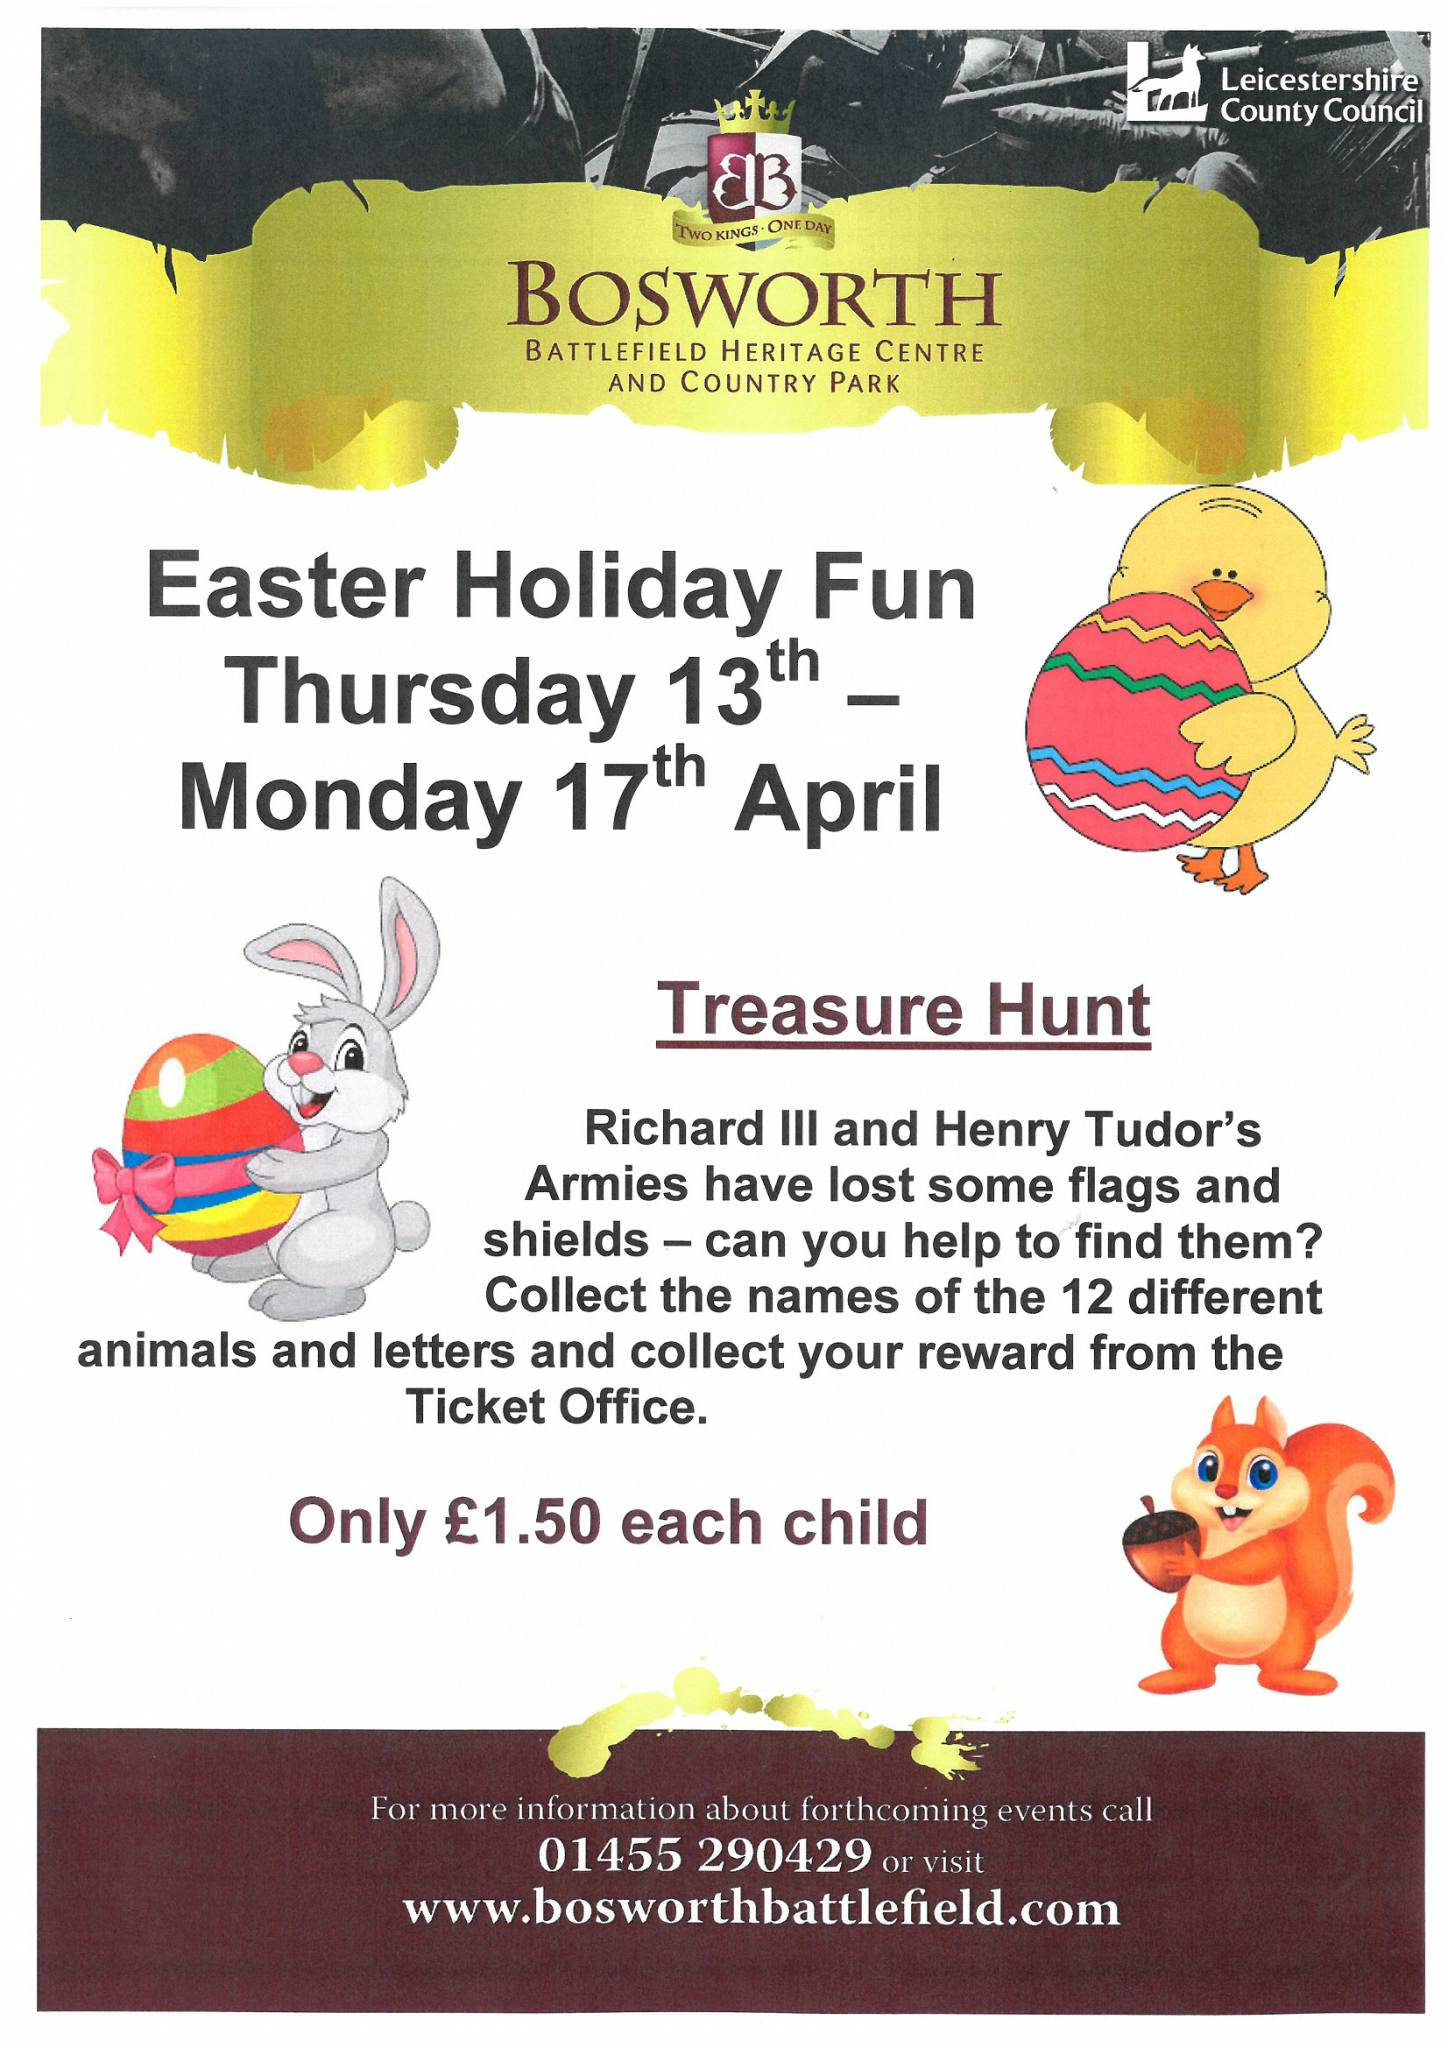 Easter Holiday Fun Treasure Hunt